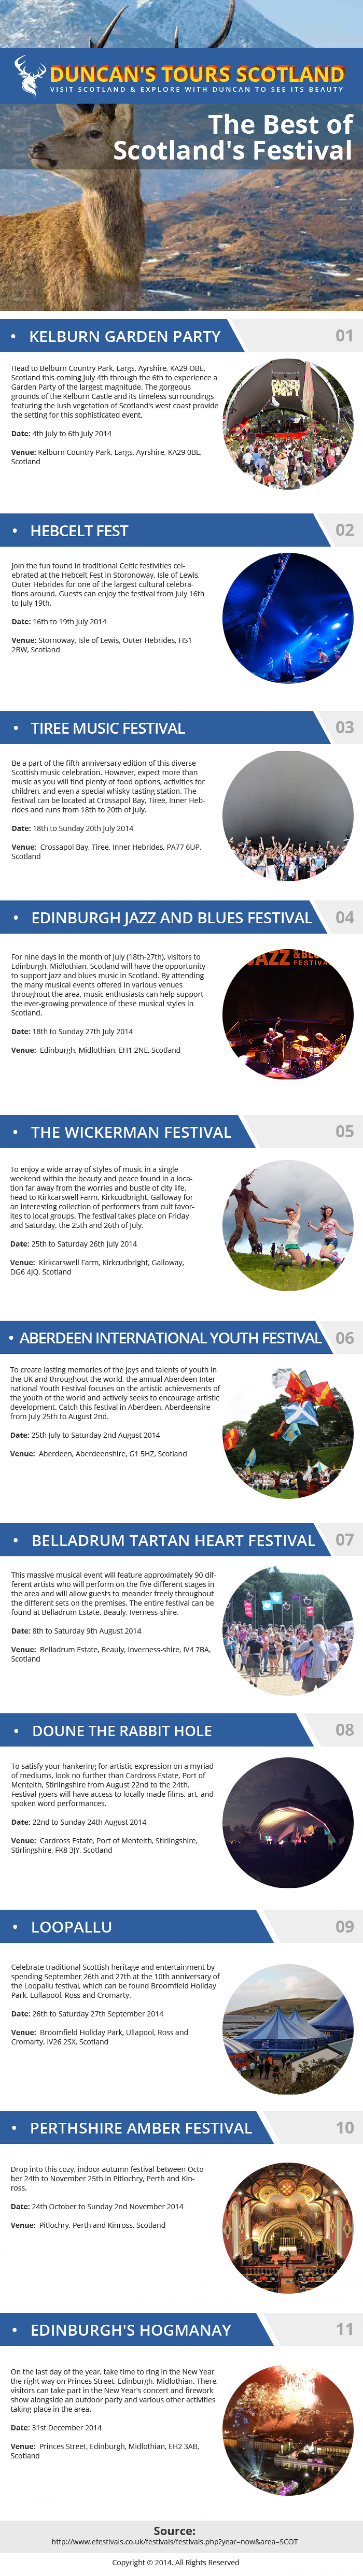 The Best of Scotland's Festival Infographic